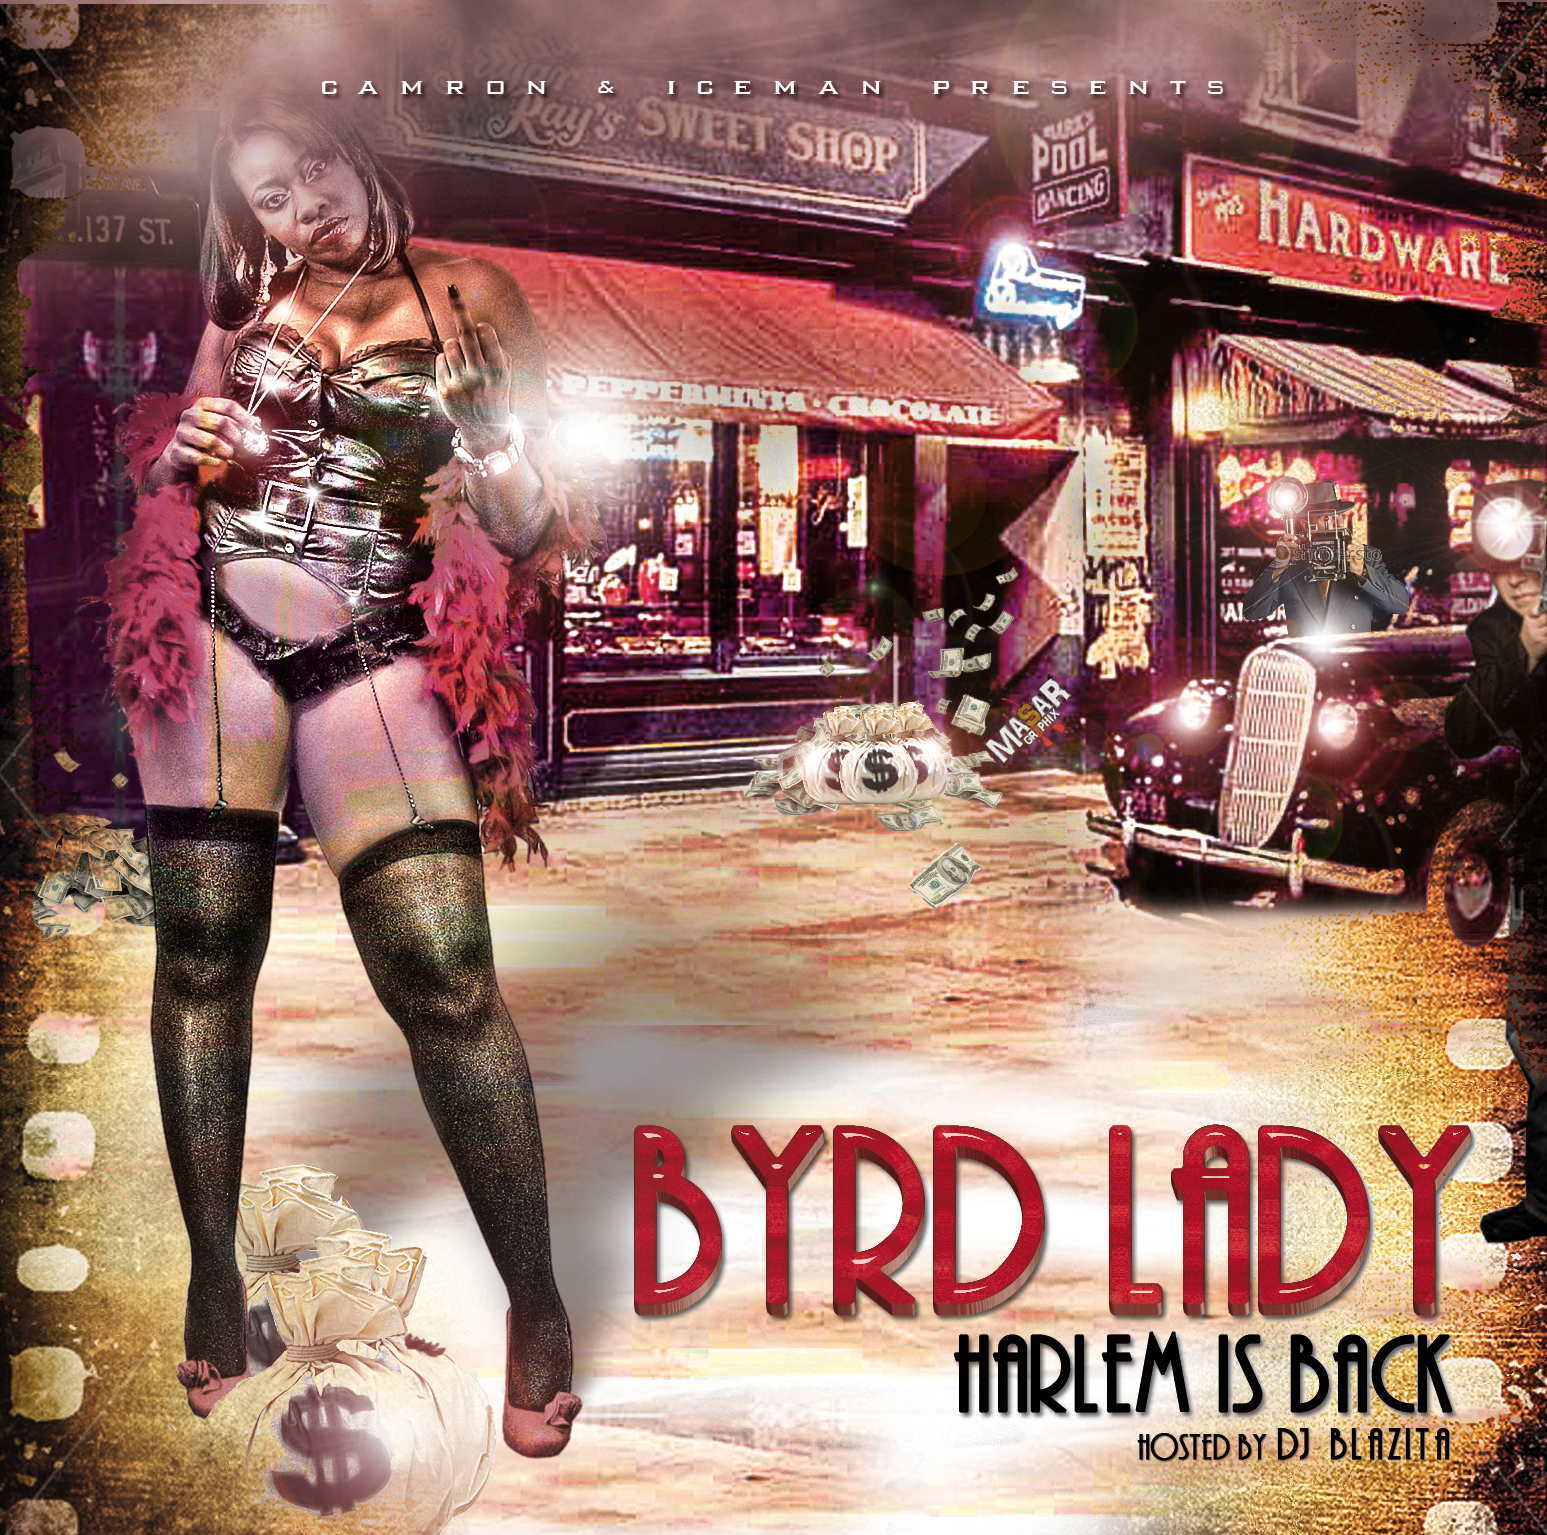 "Camron & Iceman presents: Byrd Lady ""Harlem is back"" 